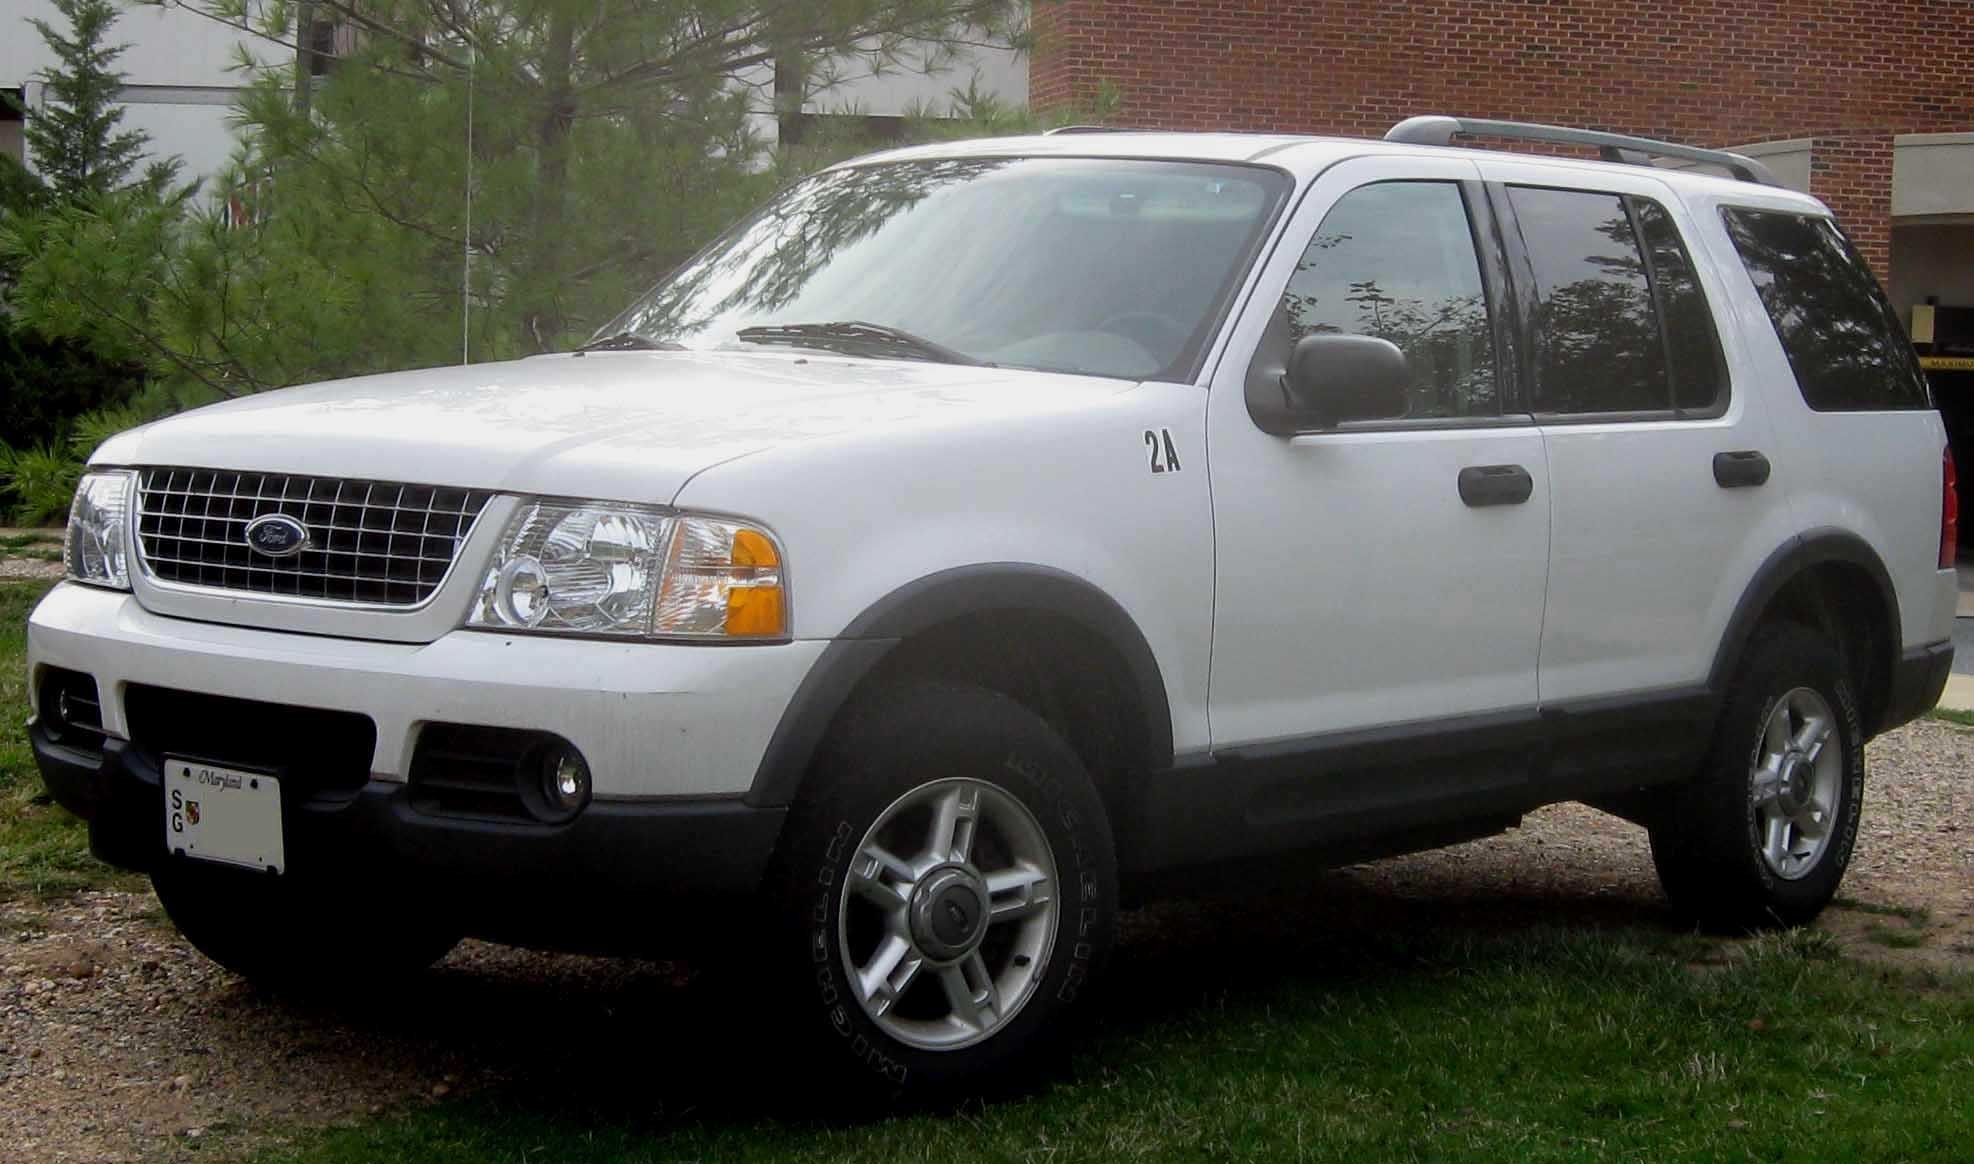 ford explorer xlt-pic. 3